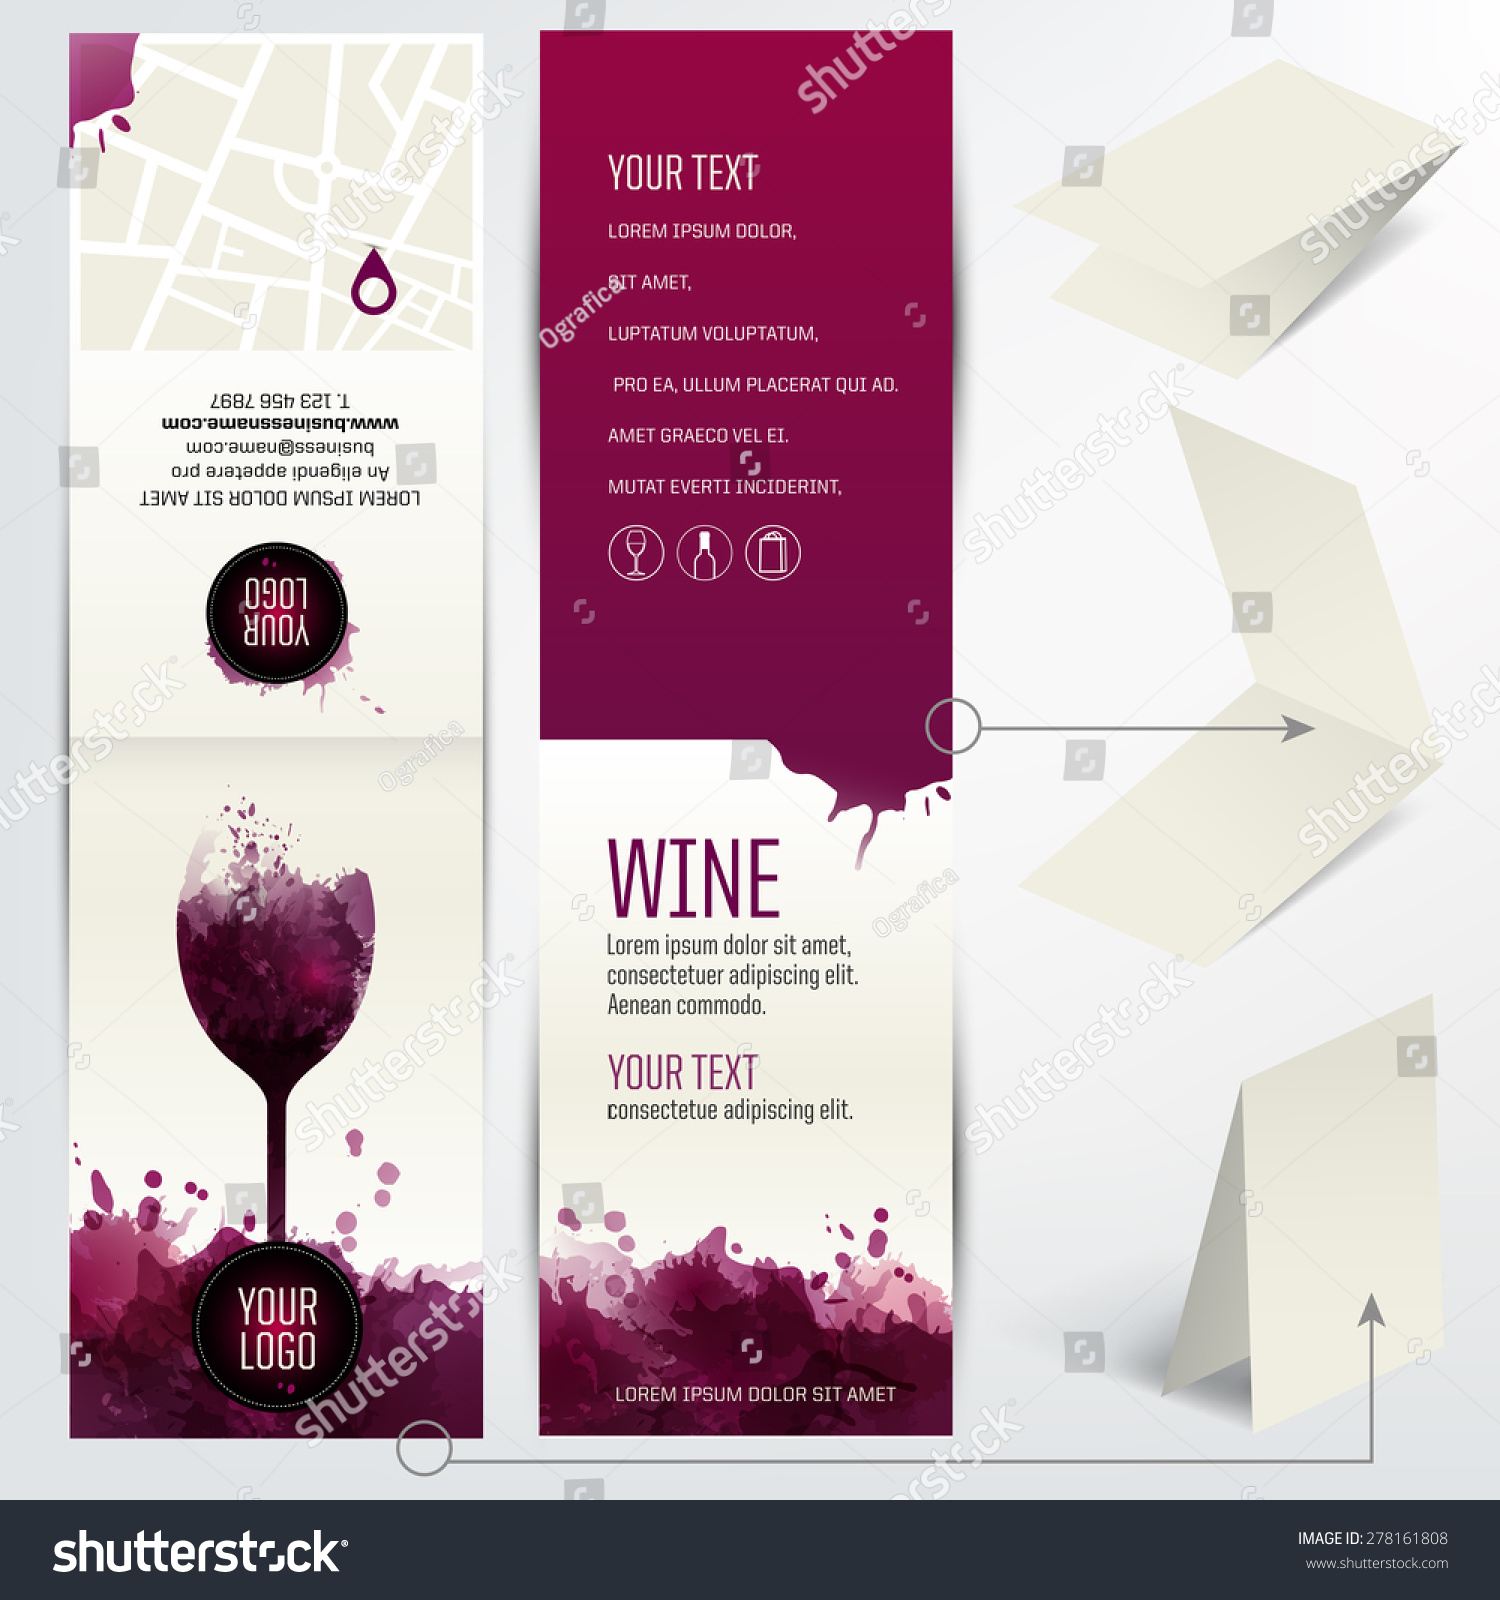 Royalty-free Card for wine business, restaurant, bar… #278161808 ...